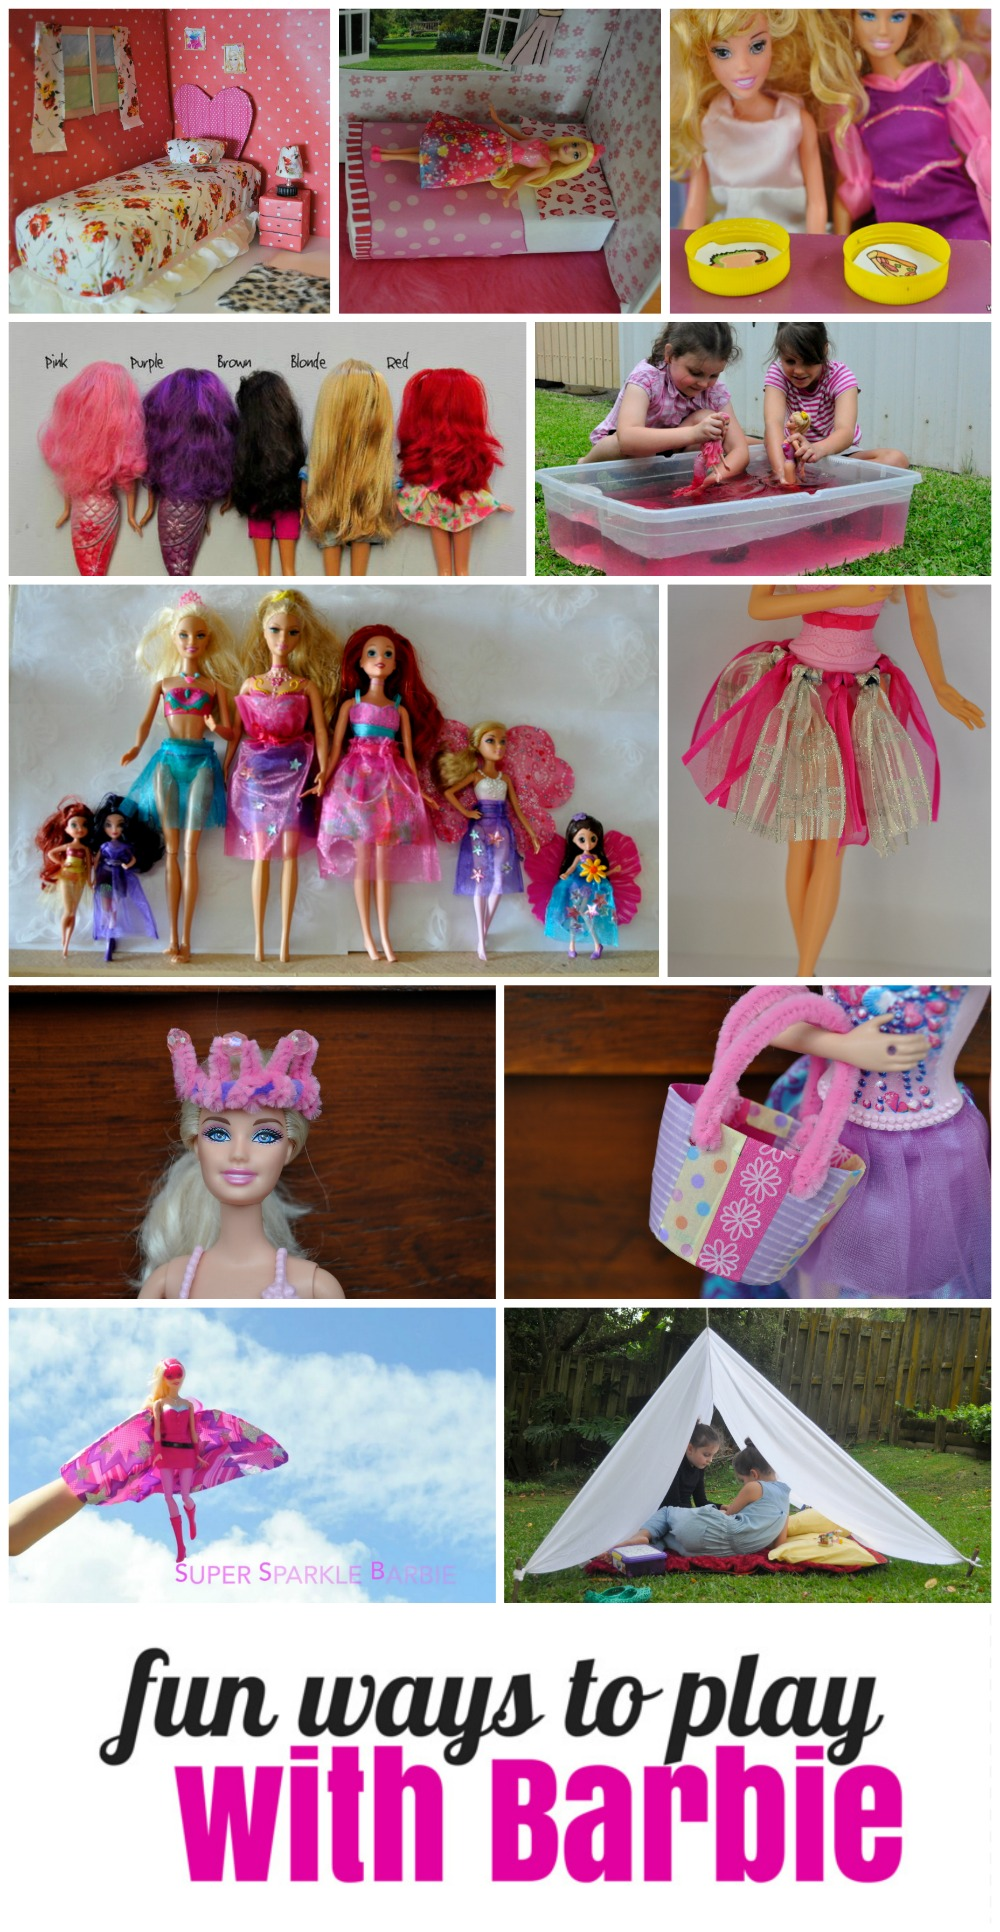 Fun ways to play with Barbie